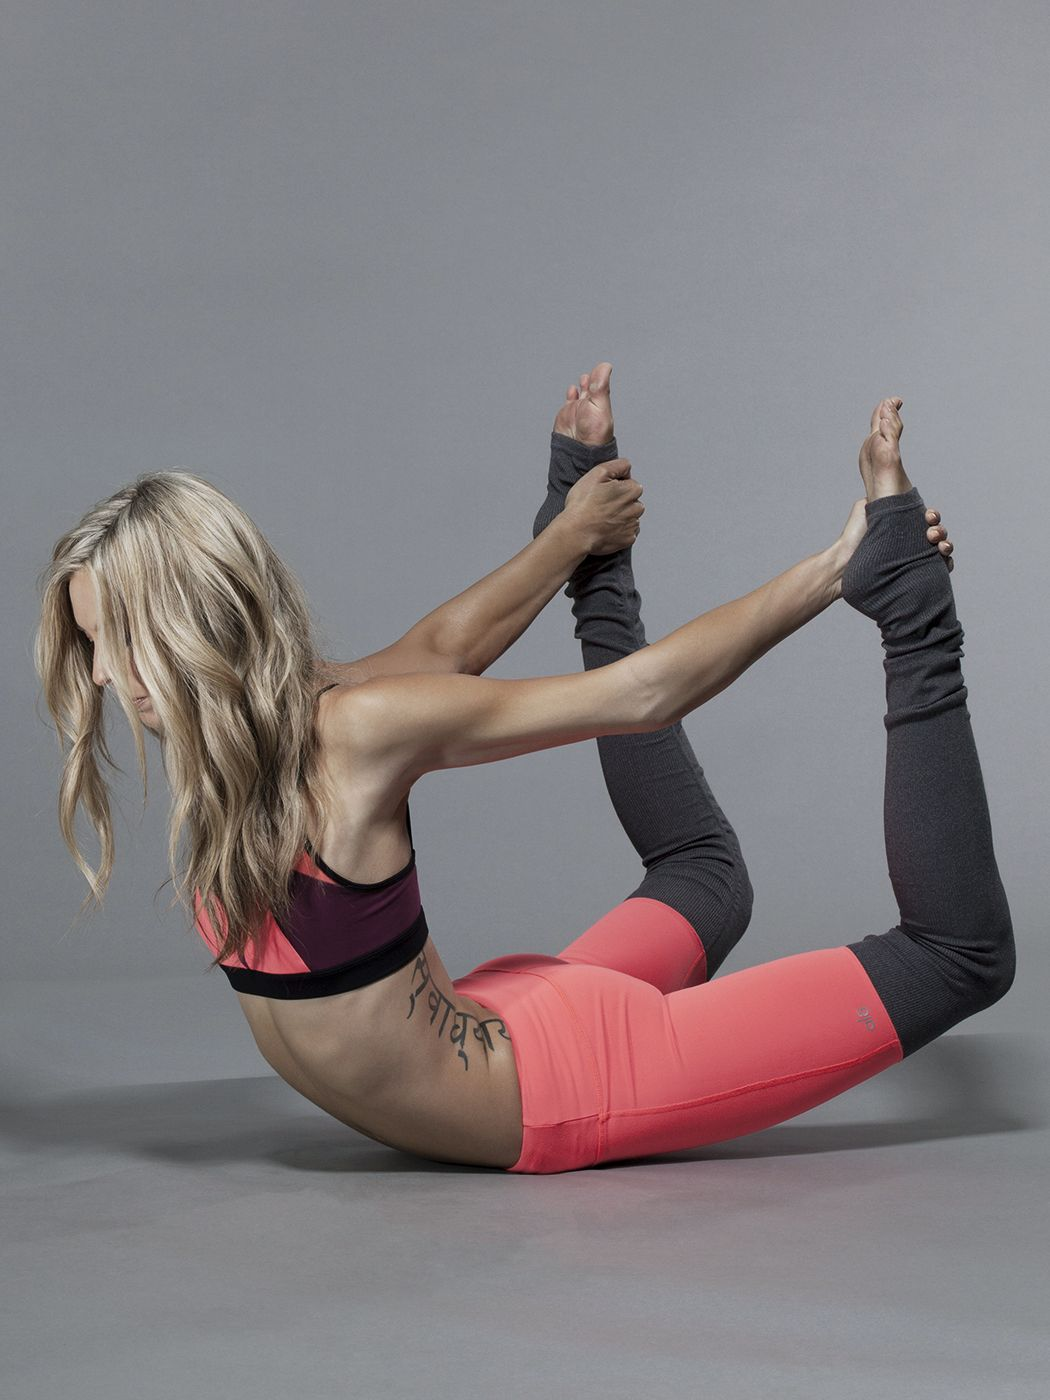 06fd1de05d0c0 Alo Yoga Goddess Ribbed Legging in Volcano/Stormy Heather #Carbon38  FitnessApparelExpress.com